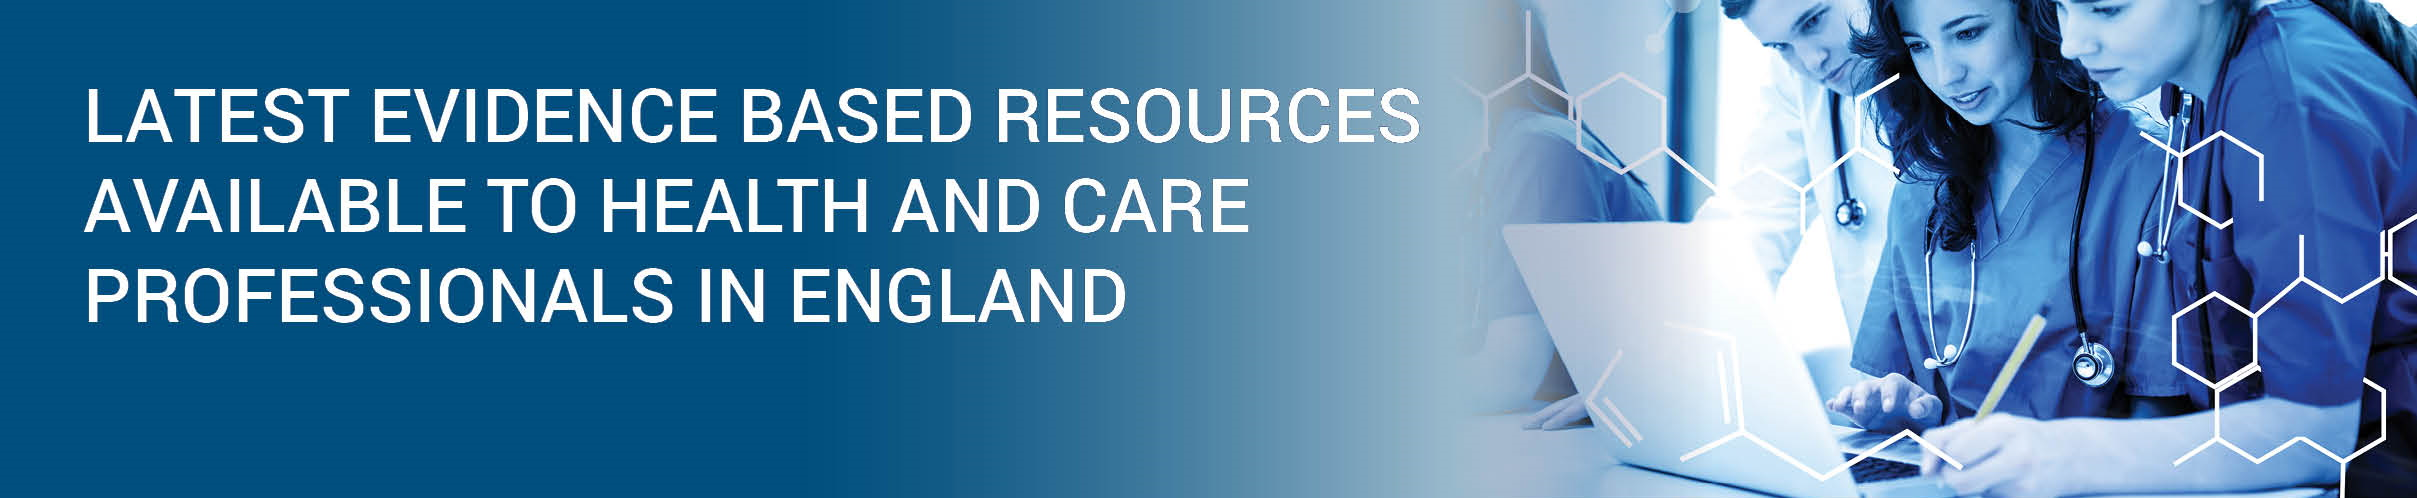 Latest evidence based resources  available to health and care Professionals in England